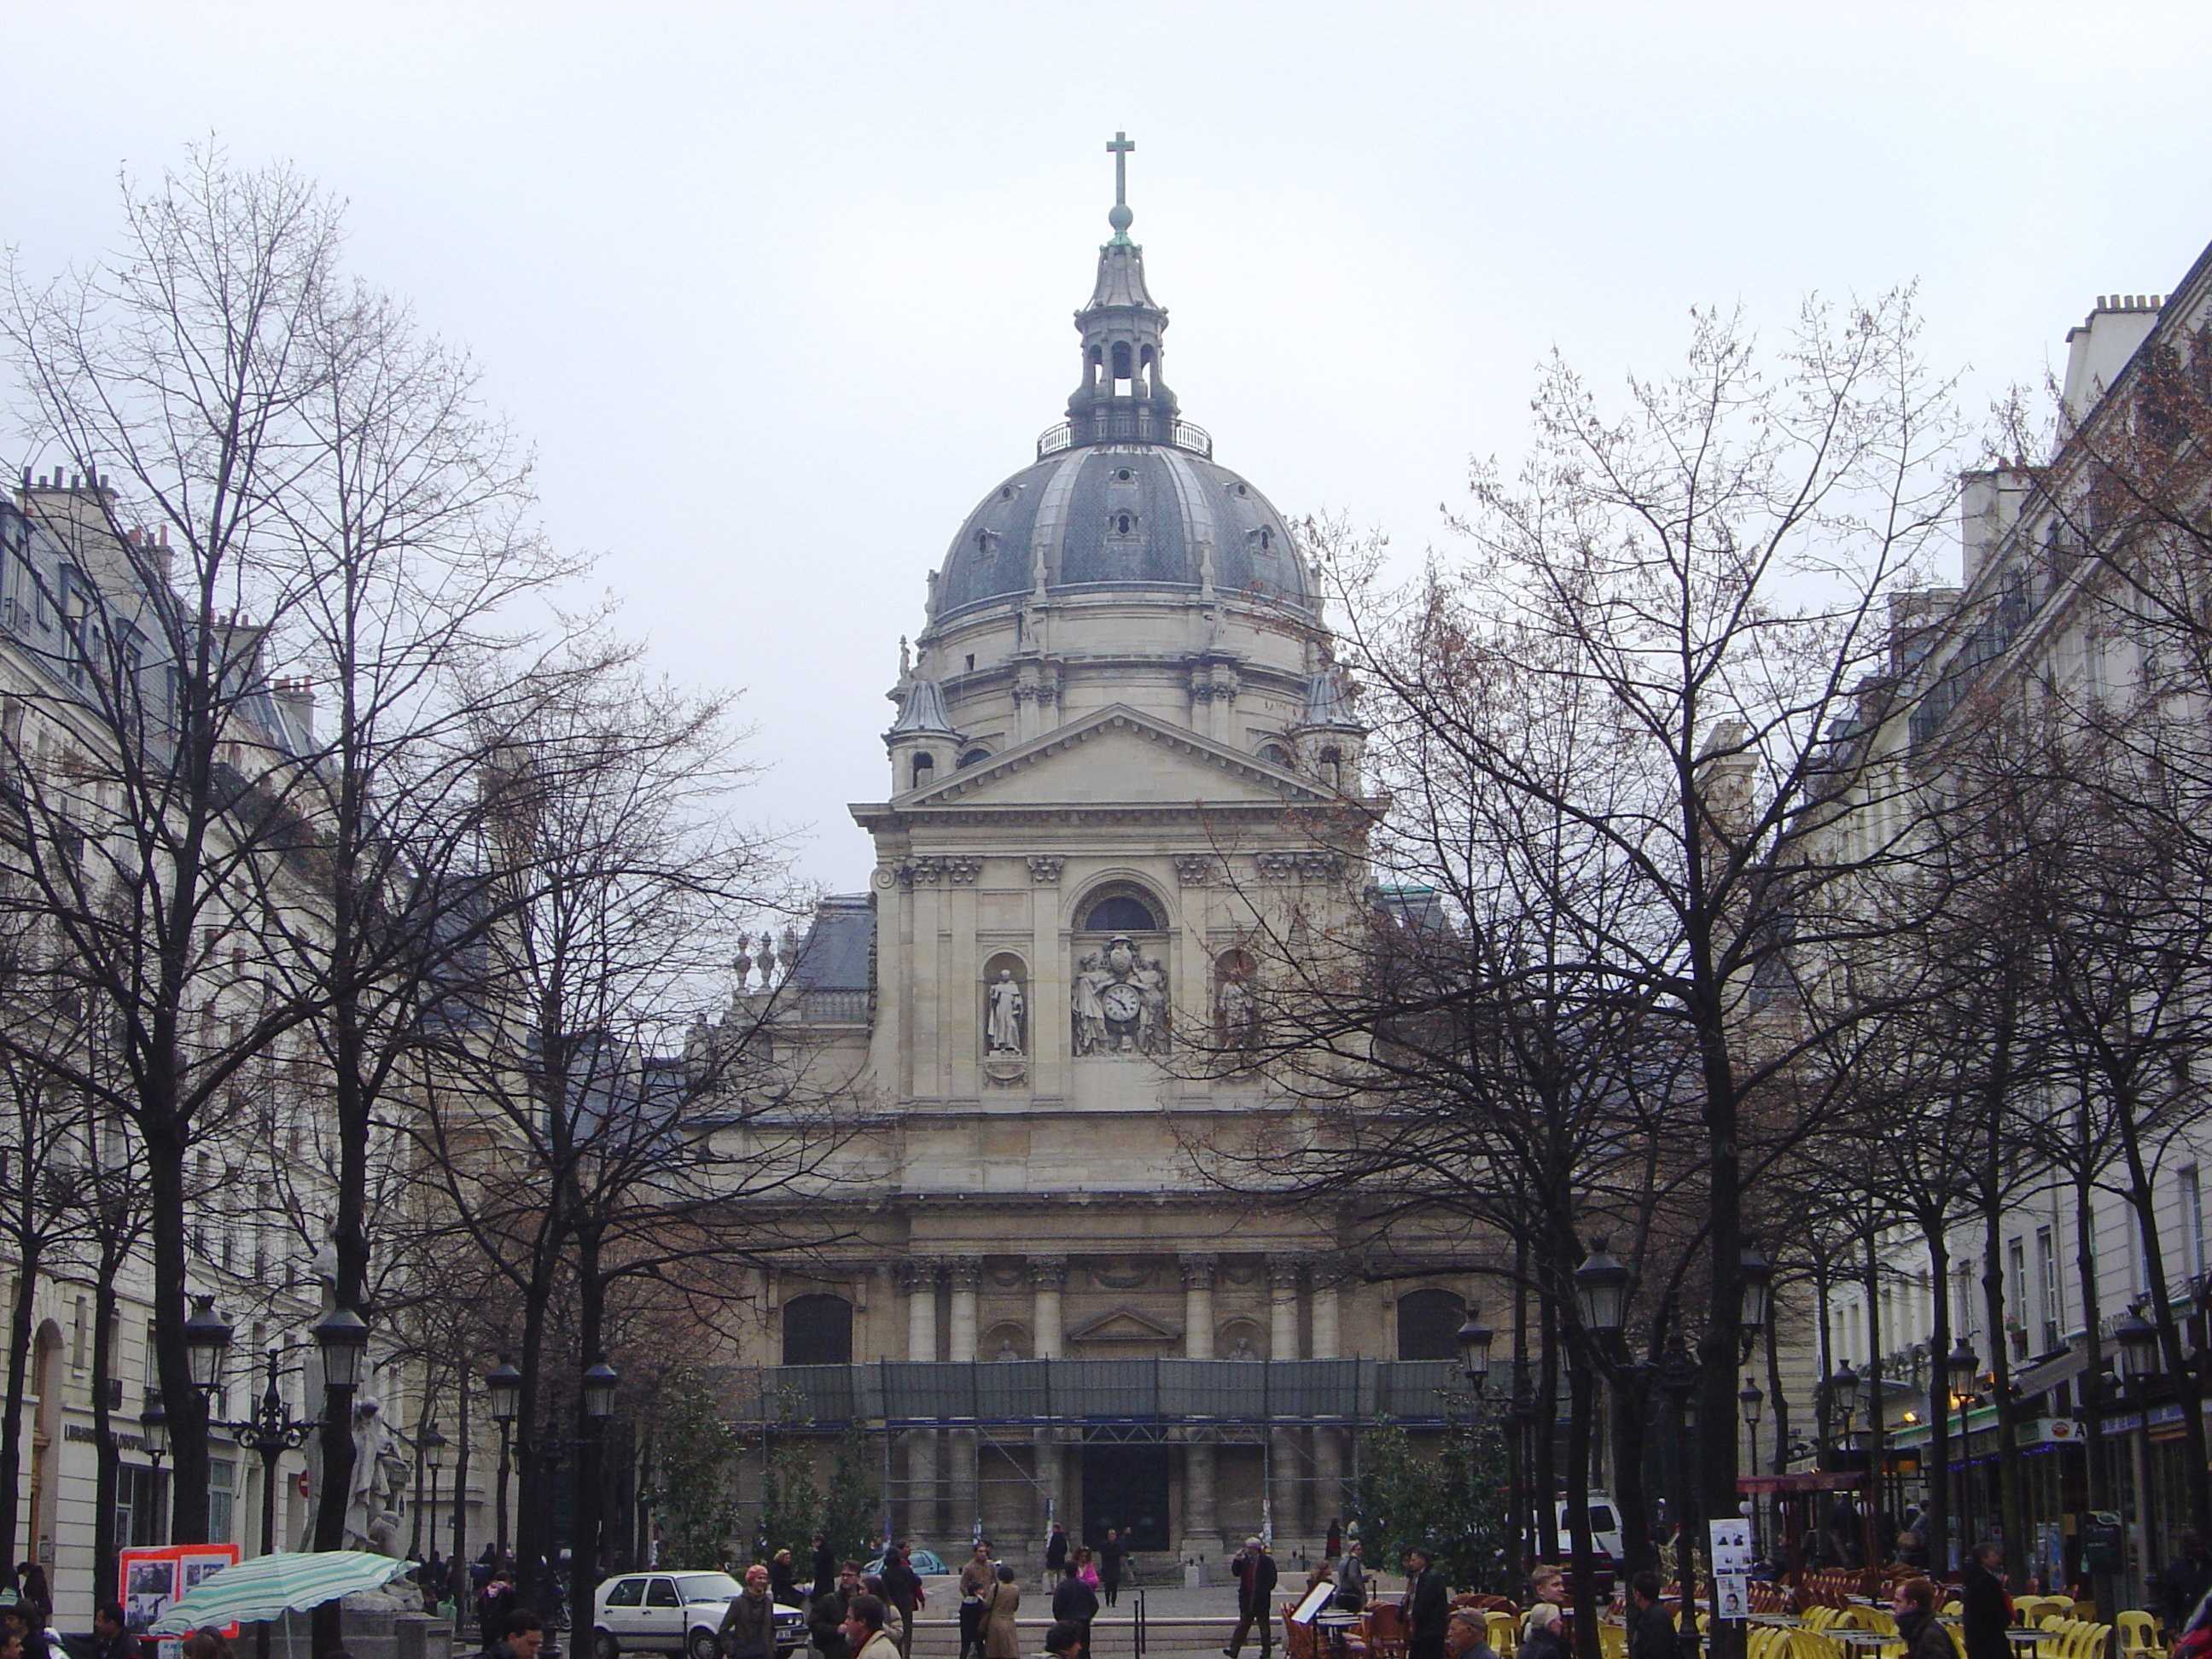 Universit paris 1 panth on sorbonne wikiwand for Sorbonne paris